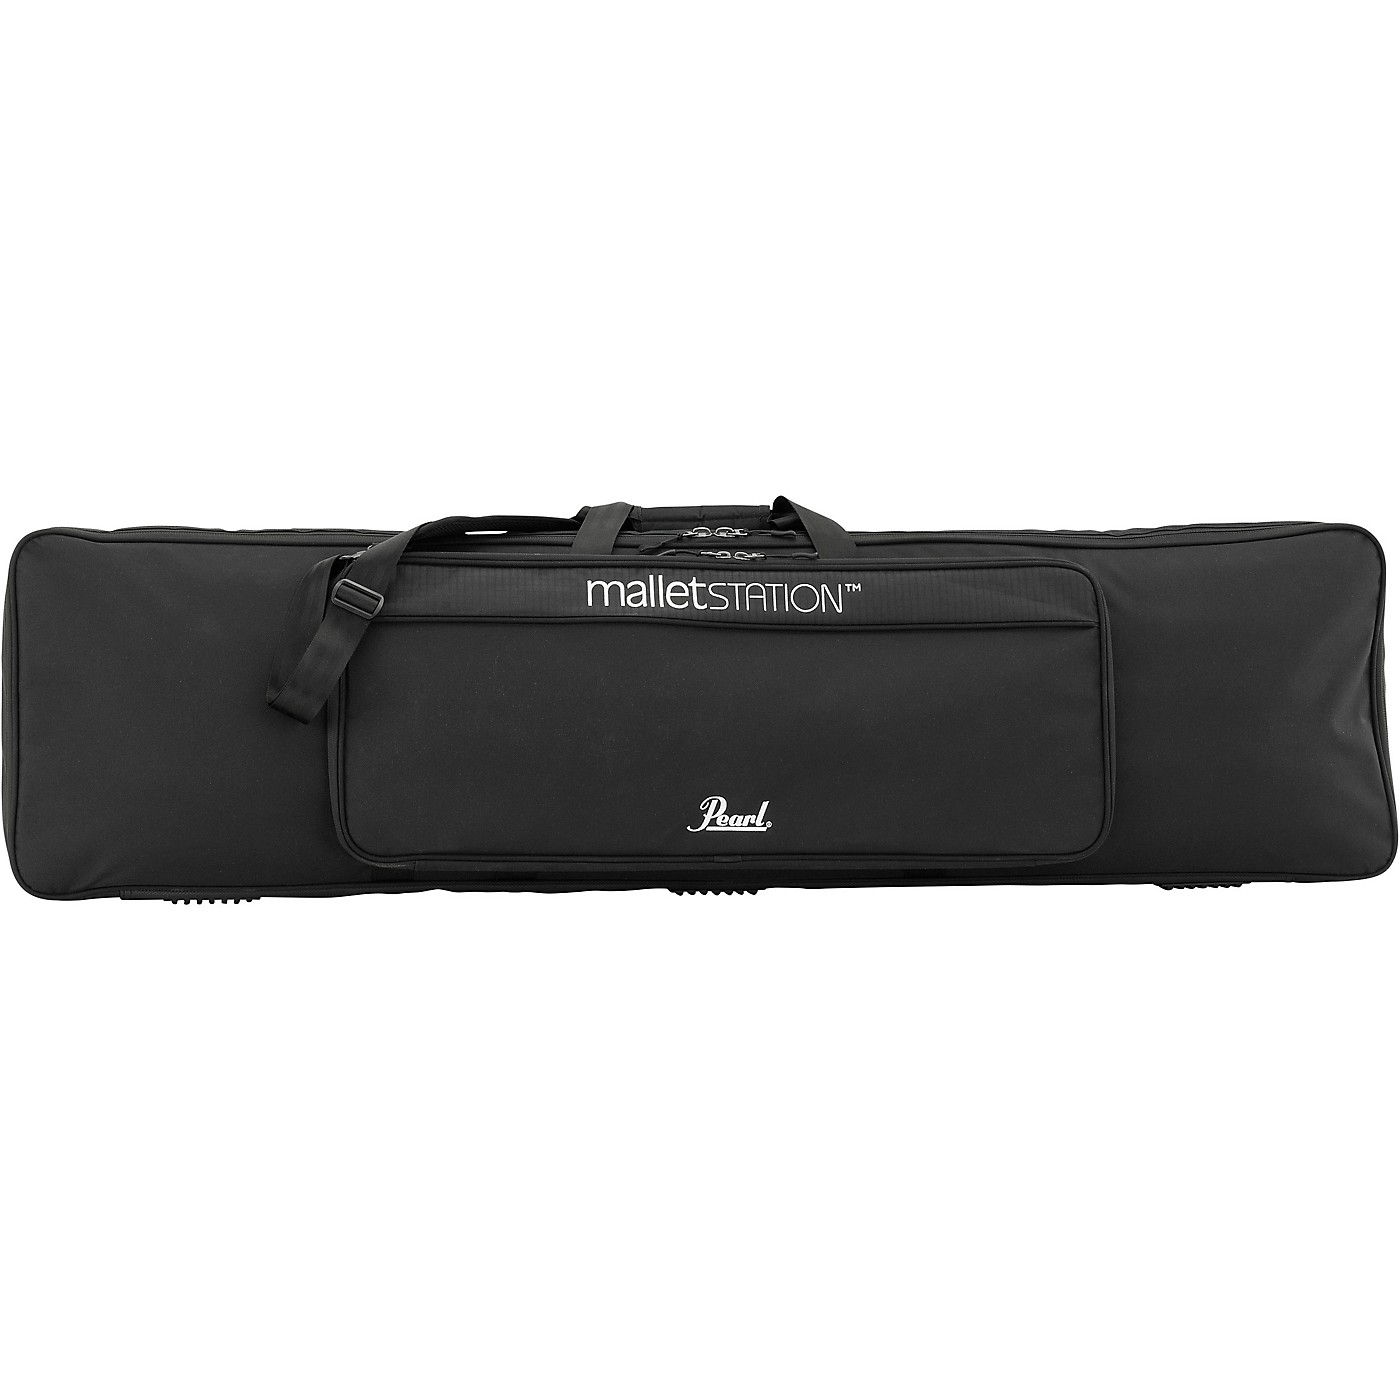 Pearl Mallet Station bag, soft side padded sleeve with accessory pouch thumbnail